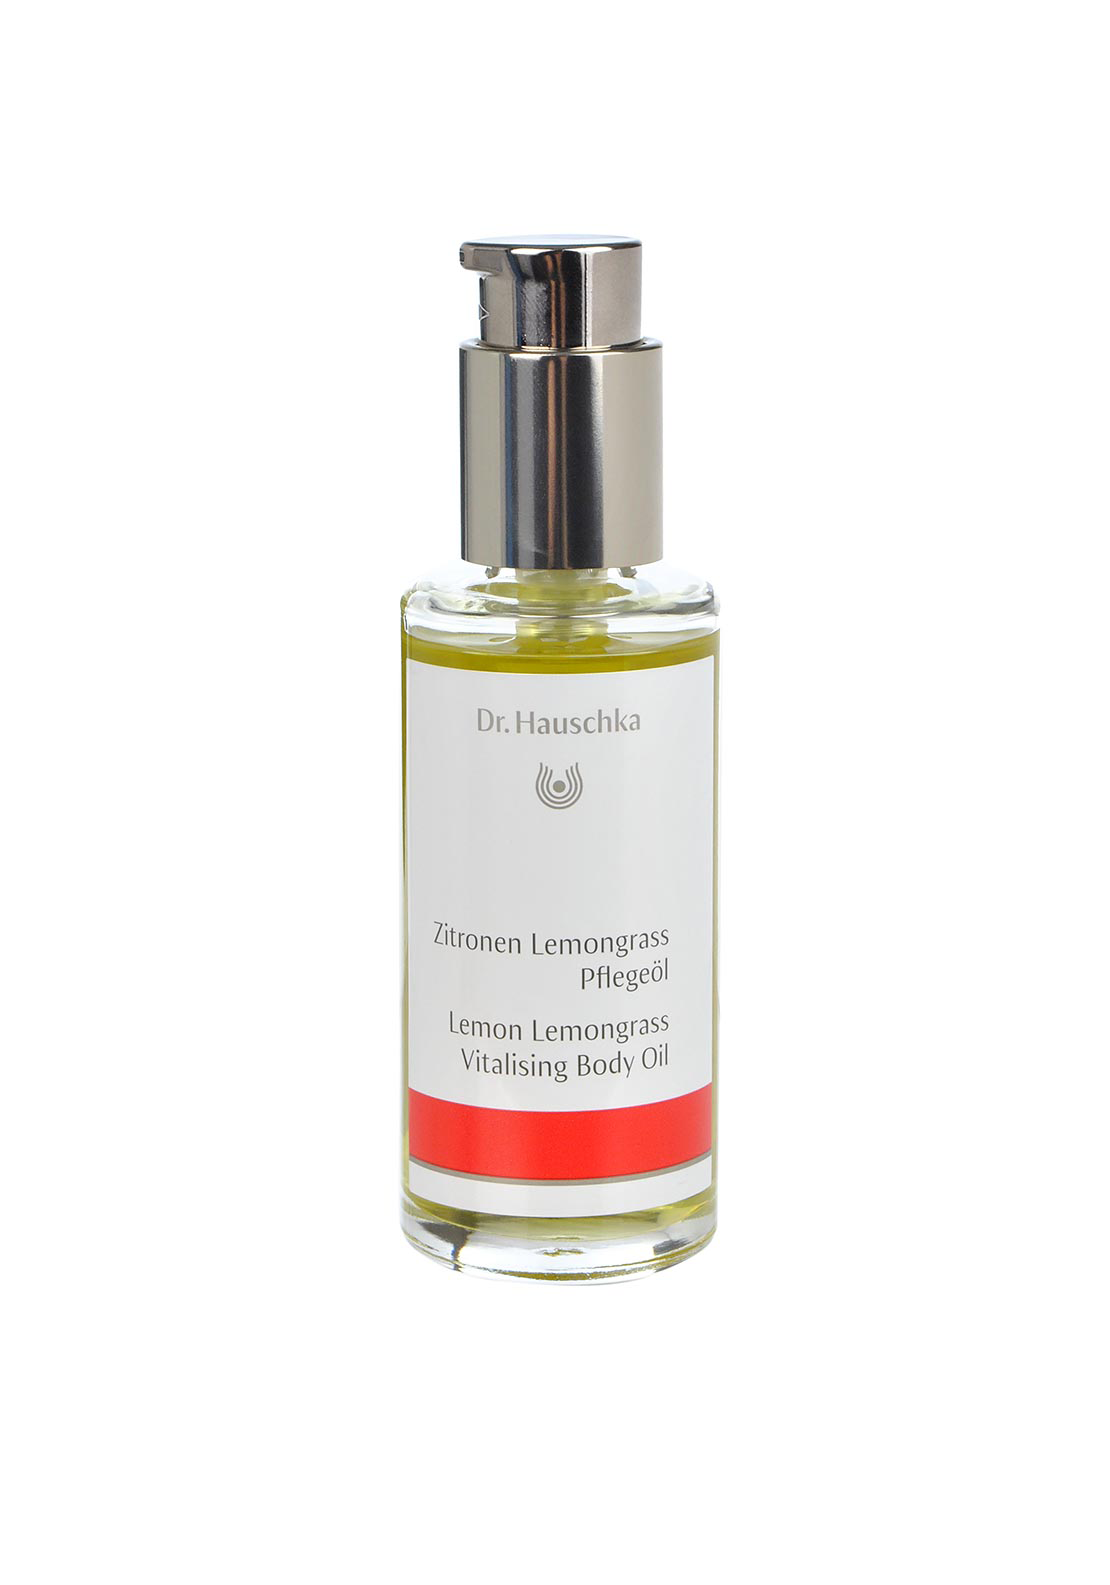 Dr. Hauschka Lemon Lemongrass Vitalising Body Oil, 75ml